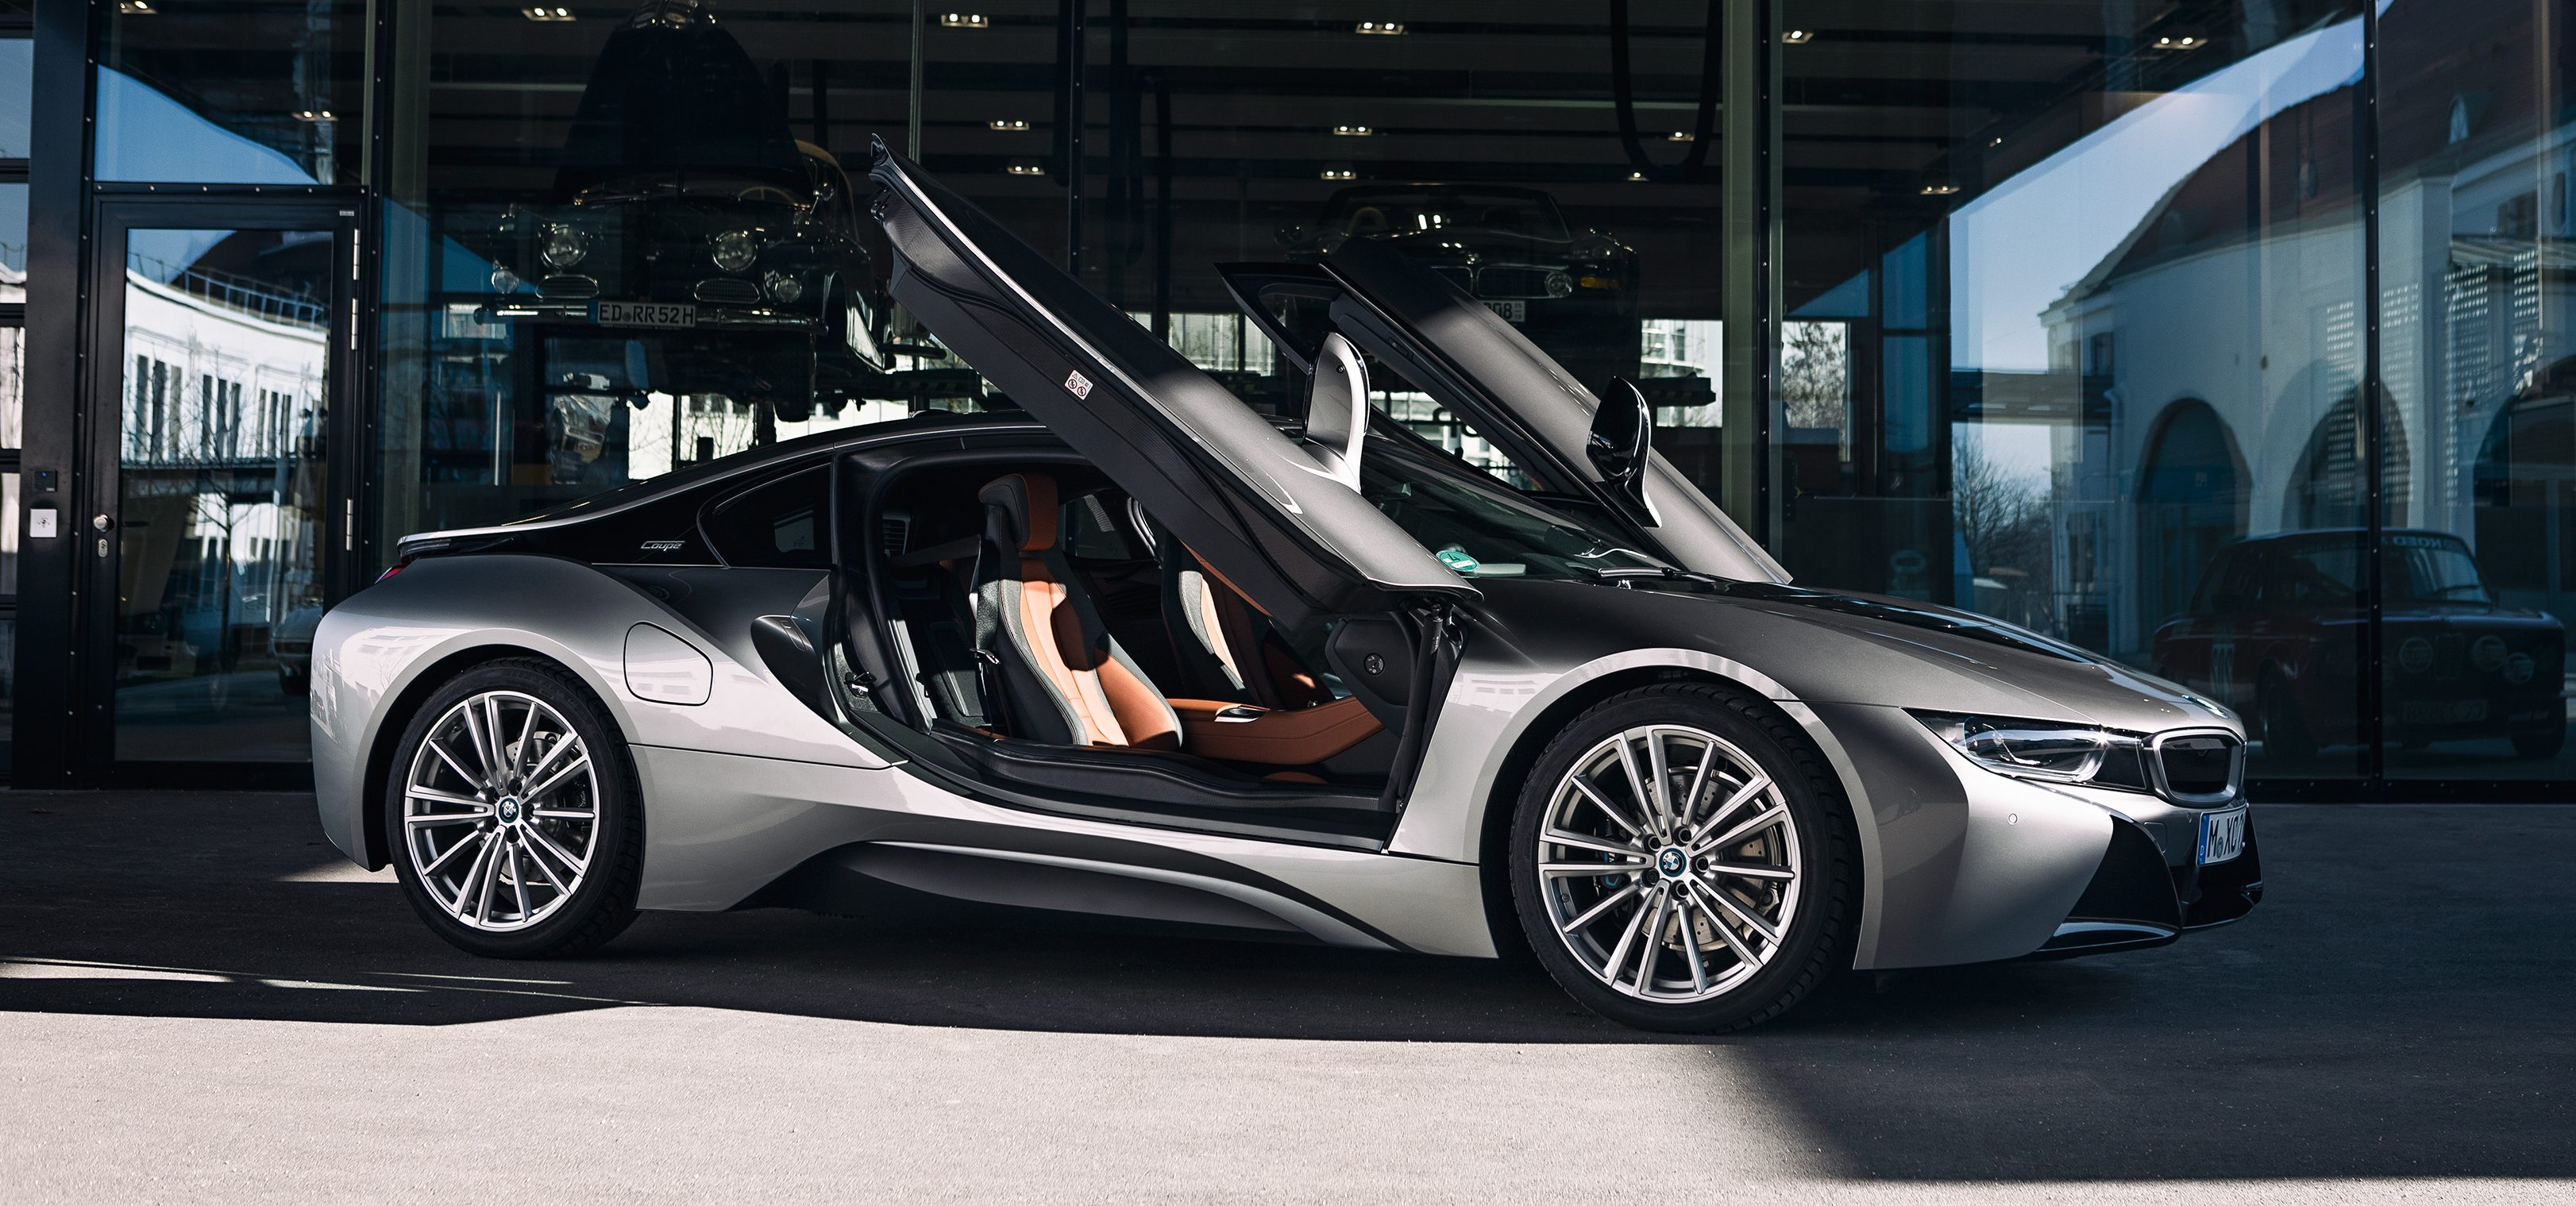 Bmw Ends Production Of The I8 Electric Sports Car Next Month Electrek